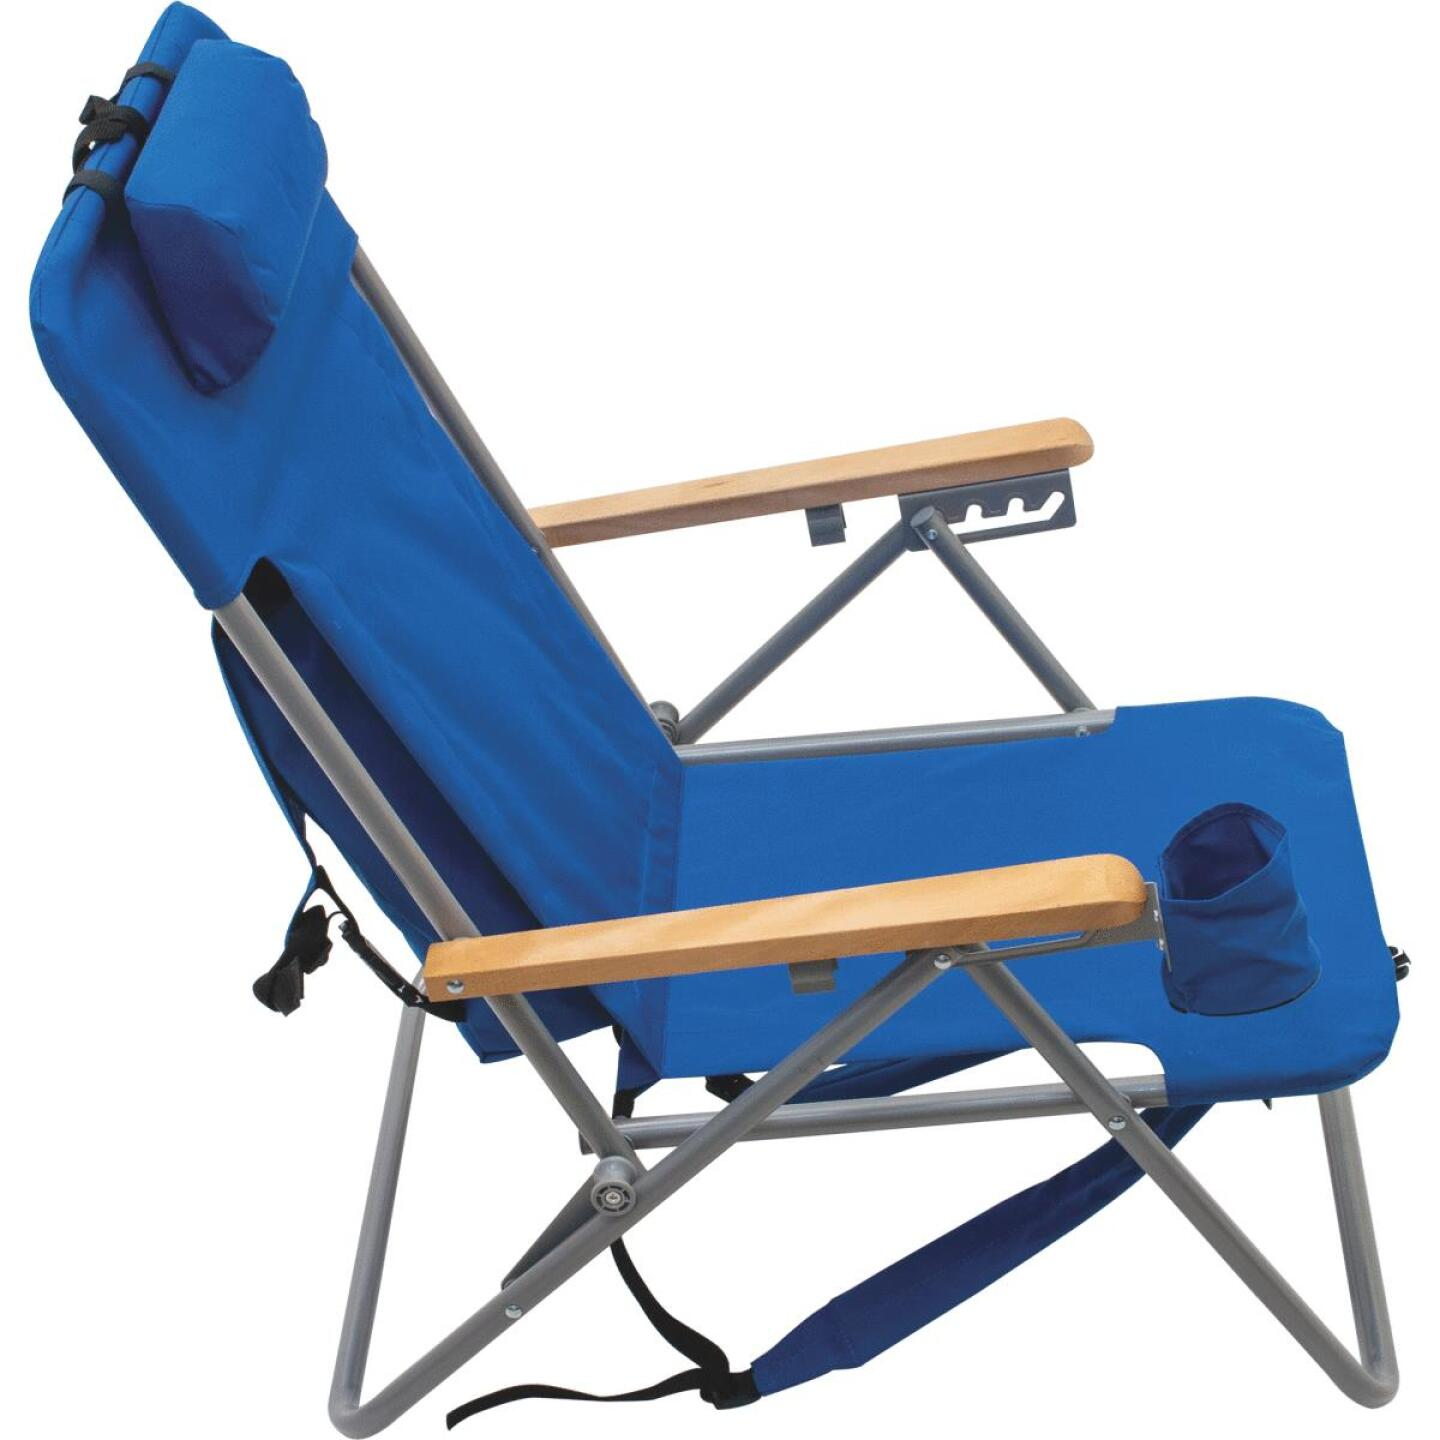 Rio Brands Blue Canvas Backpack Folding Chair Image 4